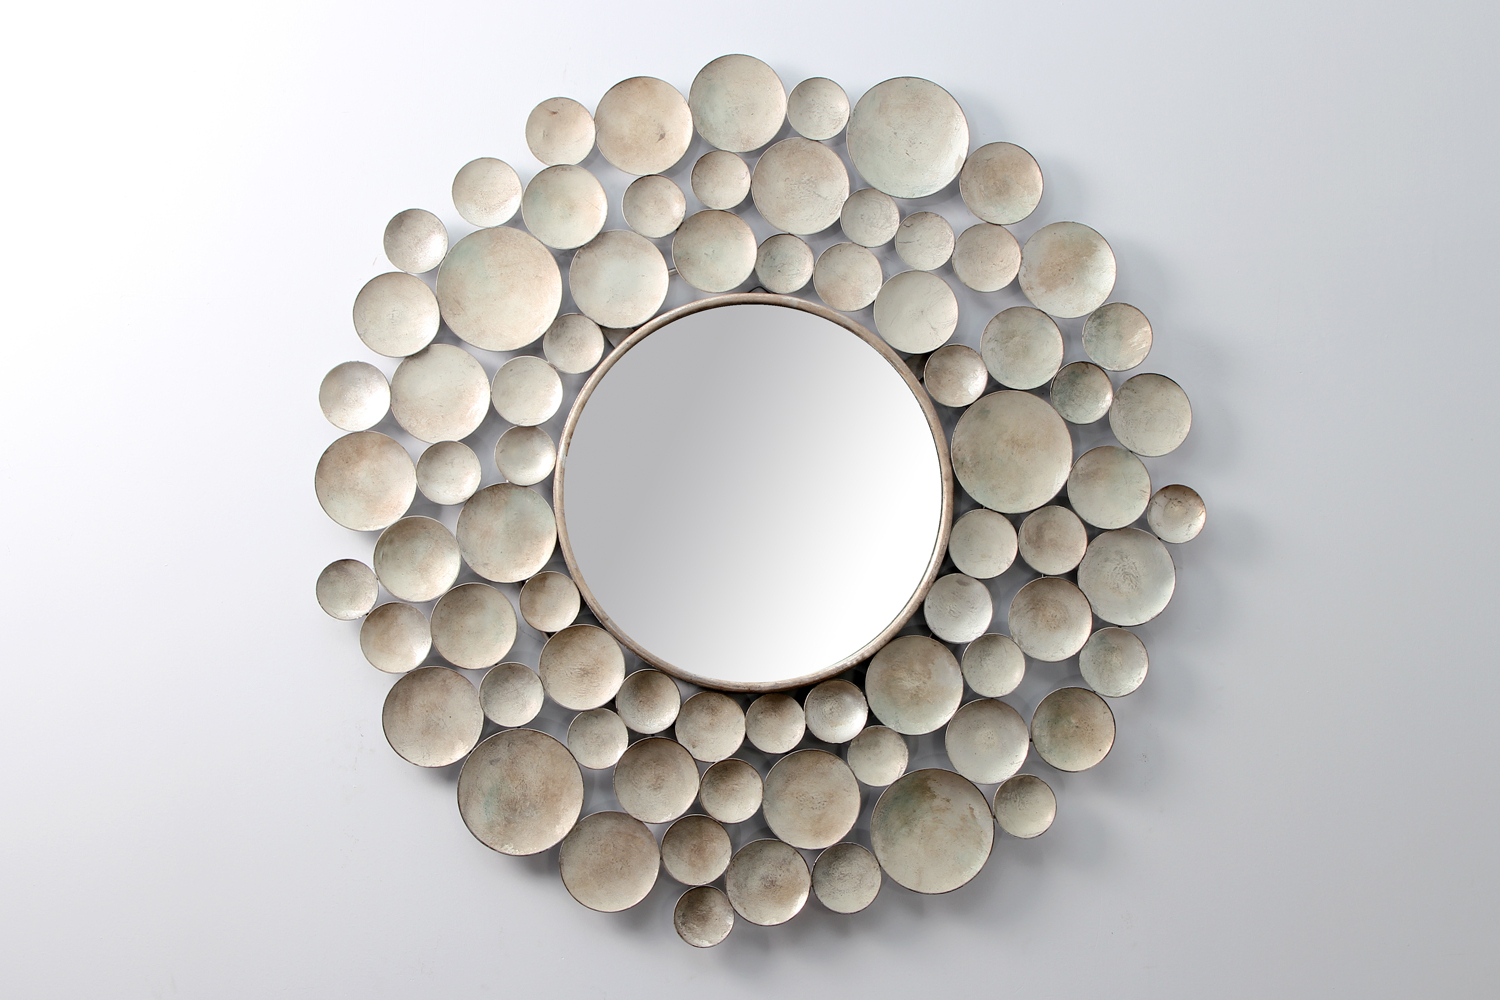 Luxury Wall Mirrors Pertaining To Latest Sputnik Wall Mirror / Wall Sculpture (View 13 of 20)